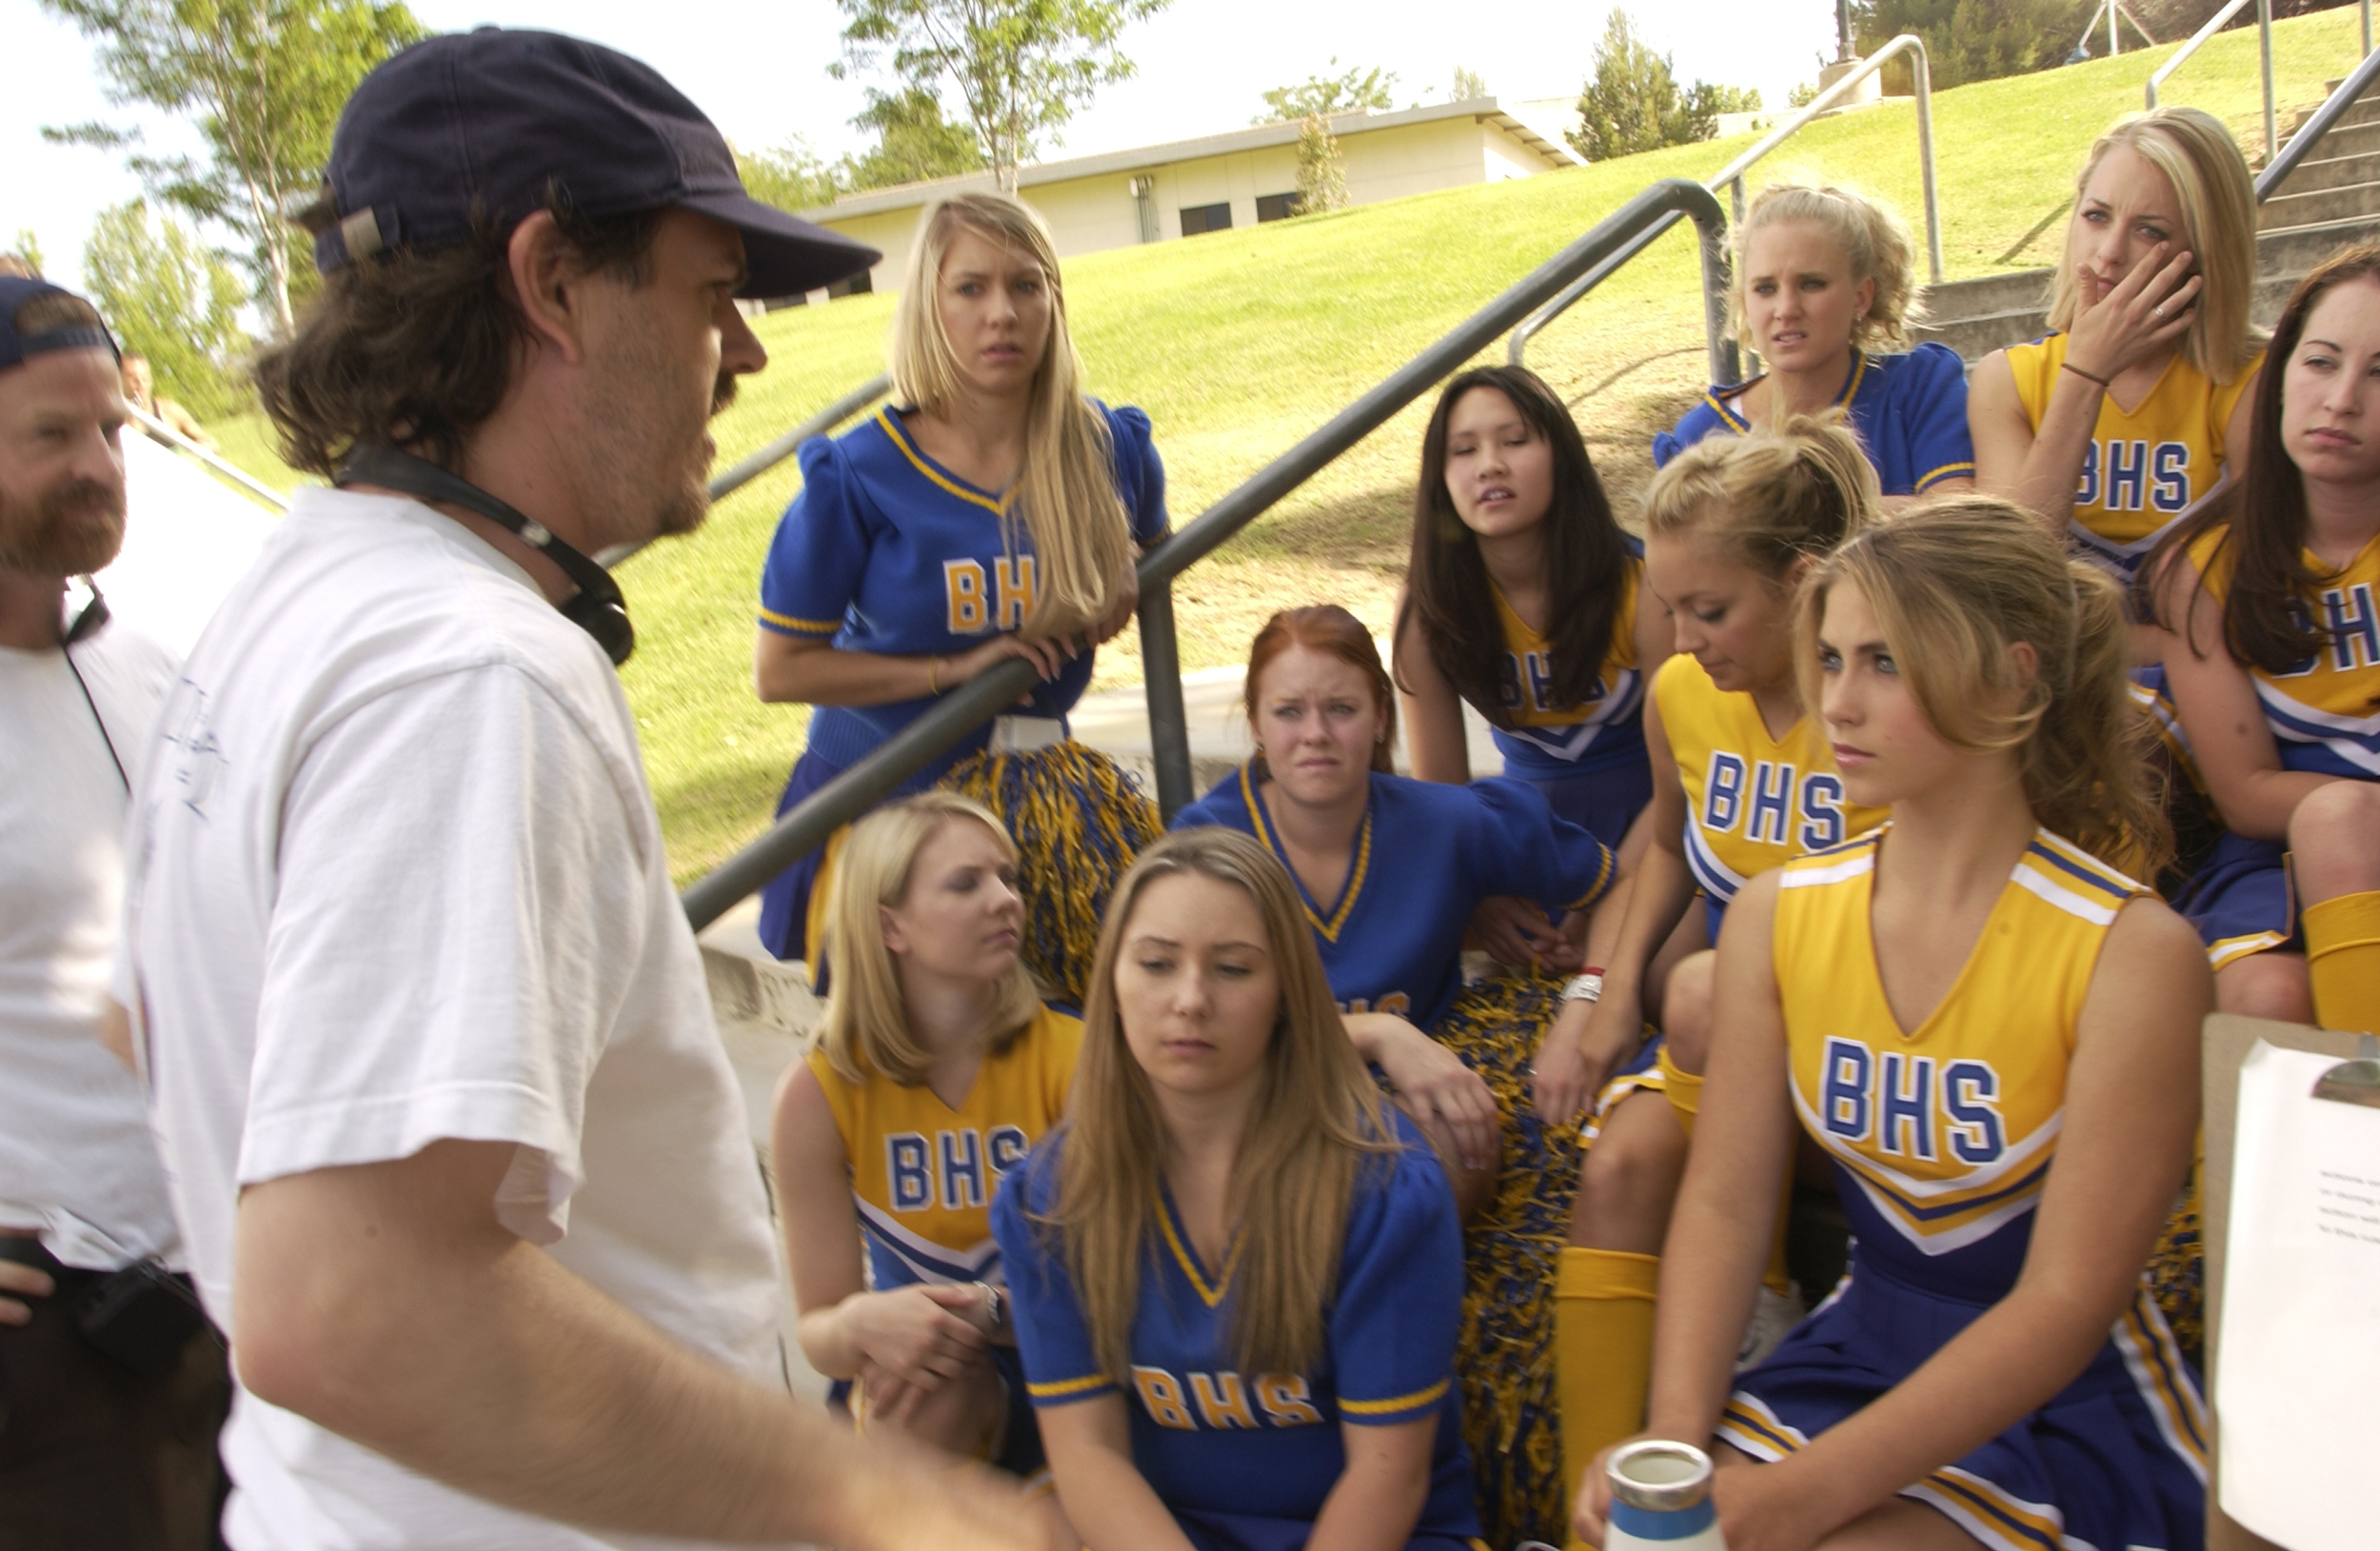 With Caitlin Wachs and Nicole Richie and the cheerleaders of Booker High School on Kids in America